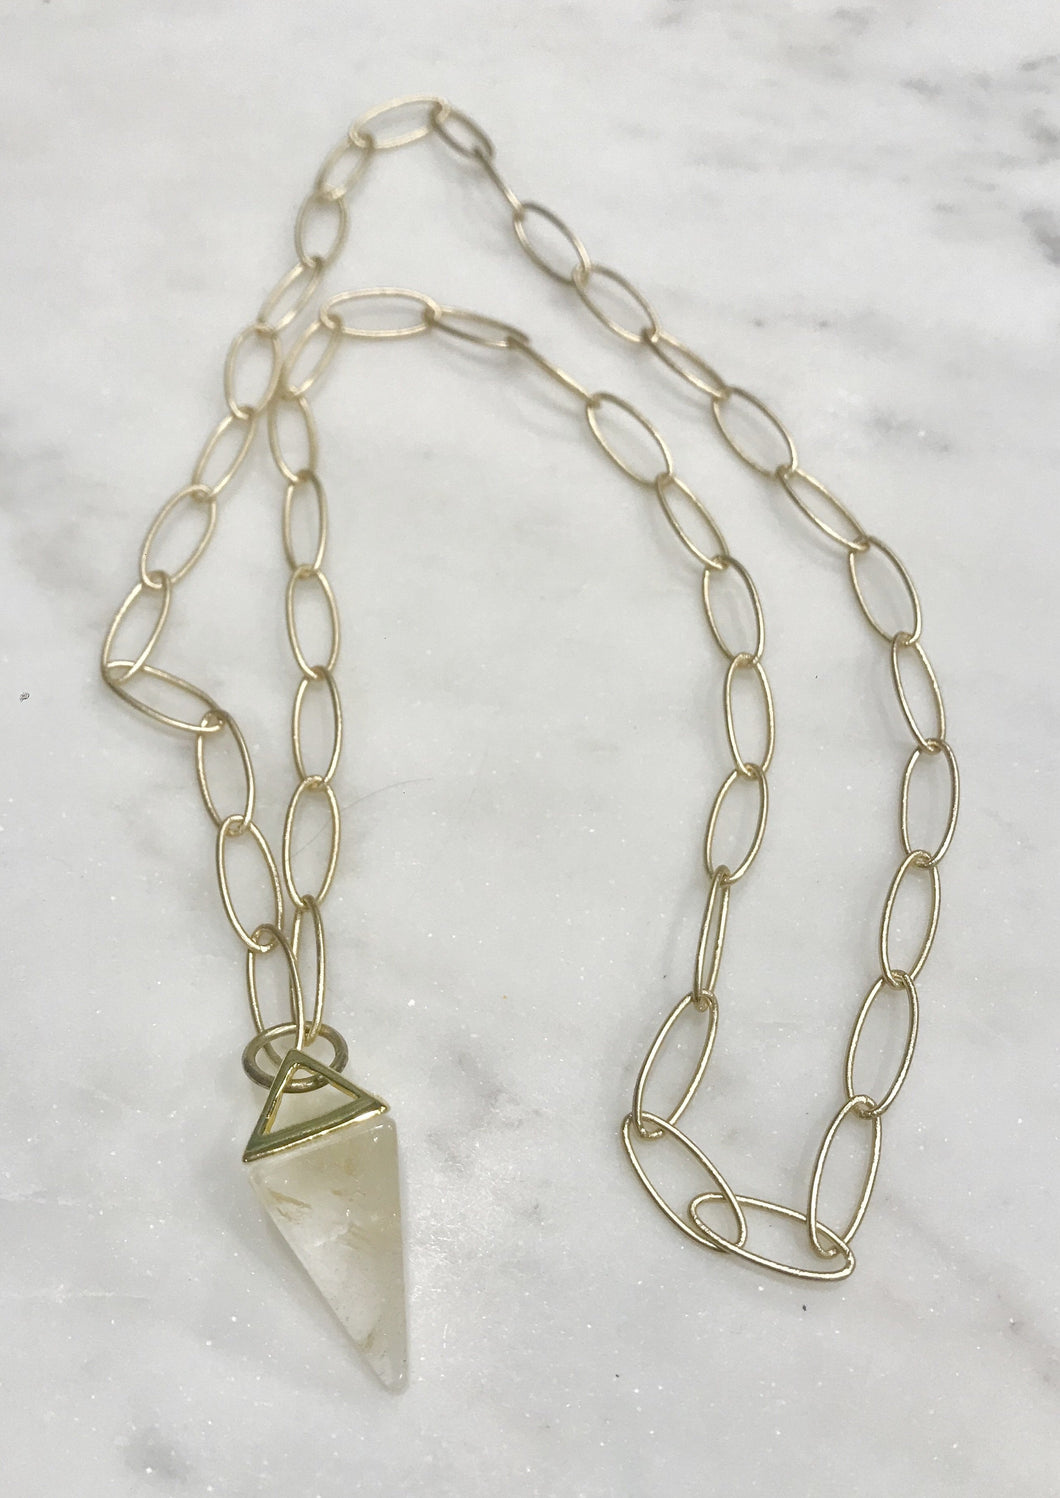 Crystal on large open chain in matte gold - 25 inch